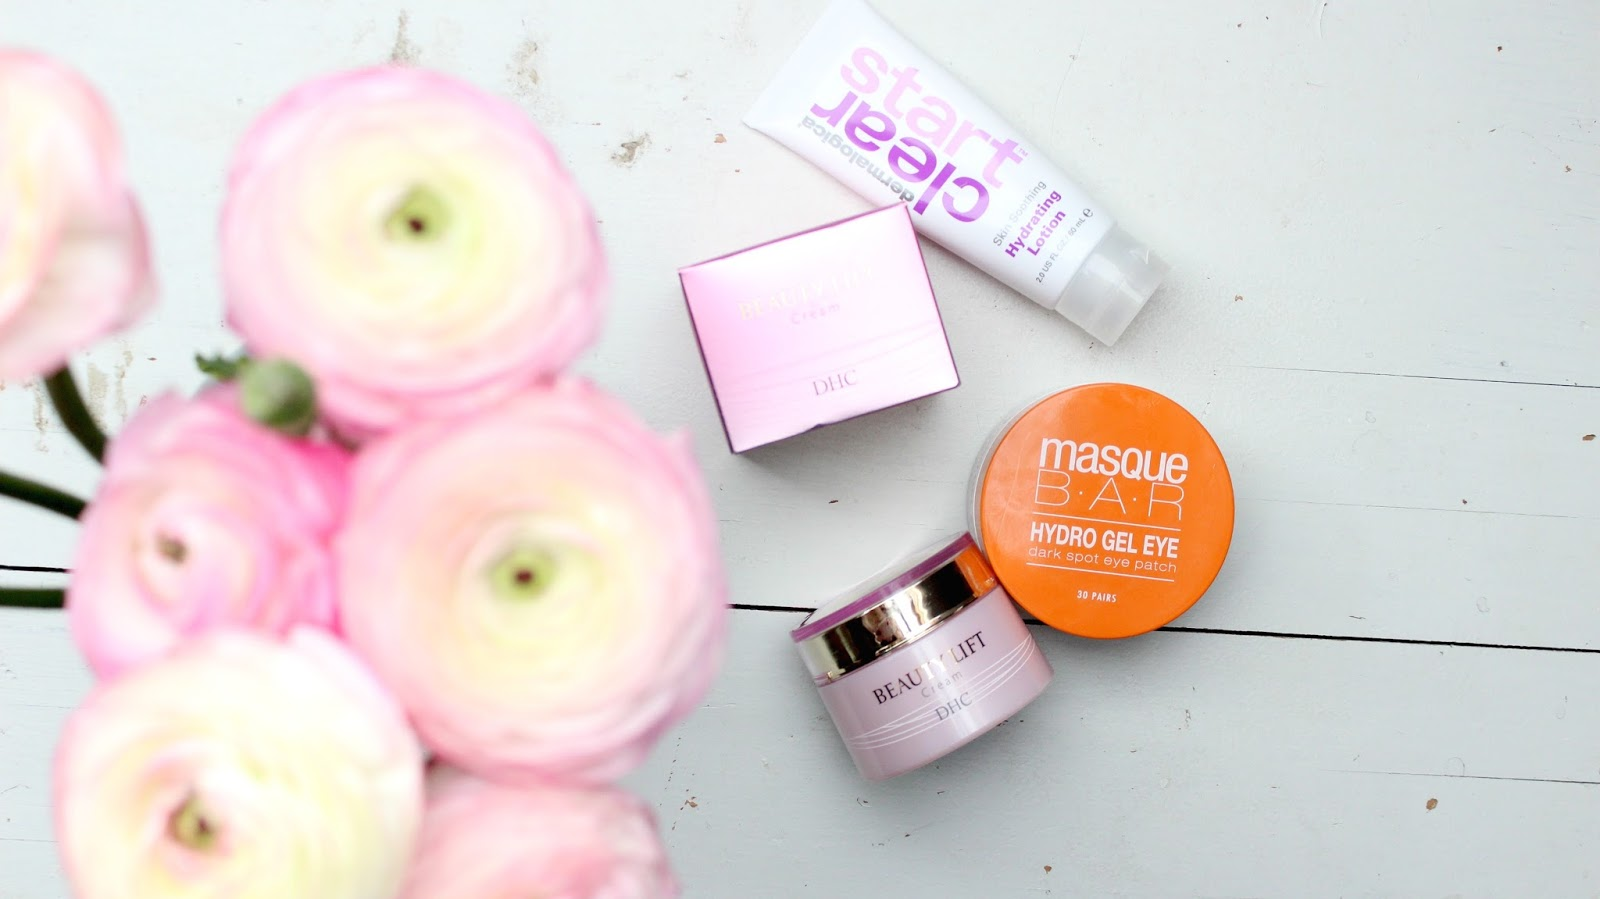 Jordaan Skincare New In Skincare Dhc Skincare Masque Dermalogica The Weekend